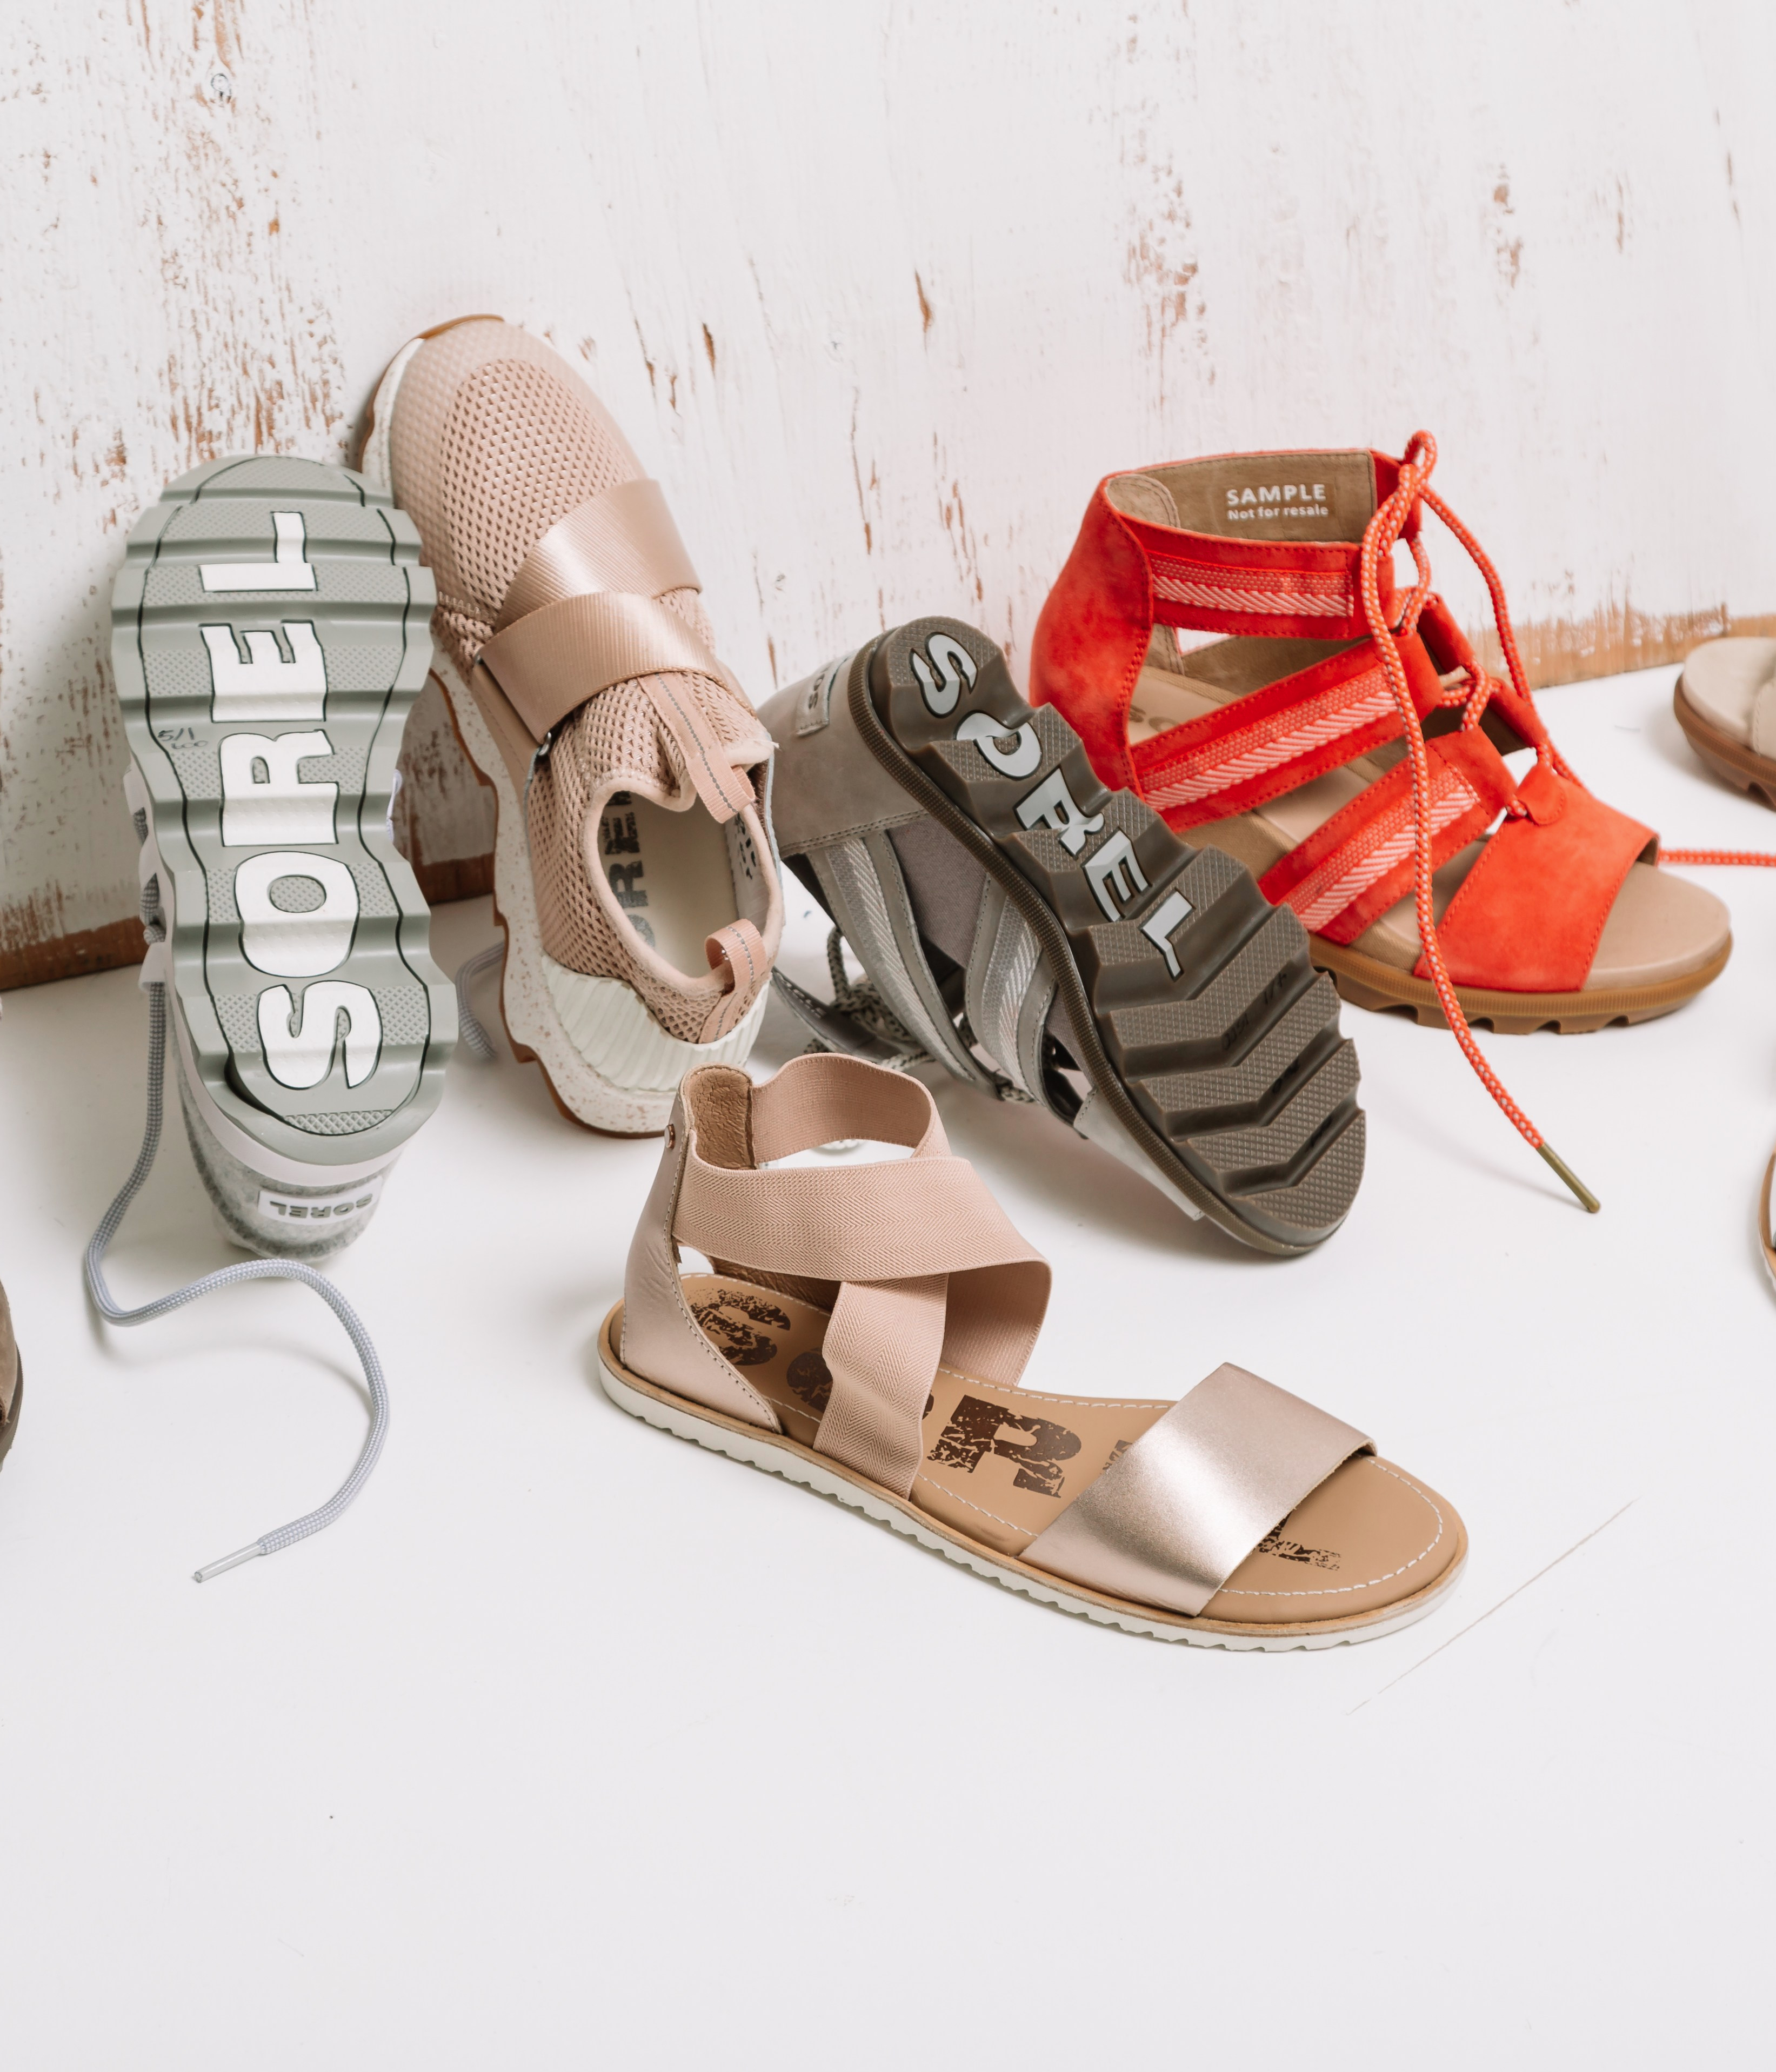 Women's Sorel Spring Summer Shoe Collection - Sandals, Wedges, Sneakers